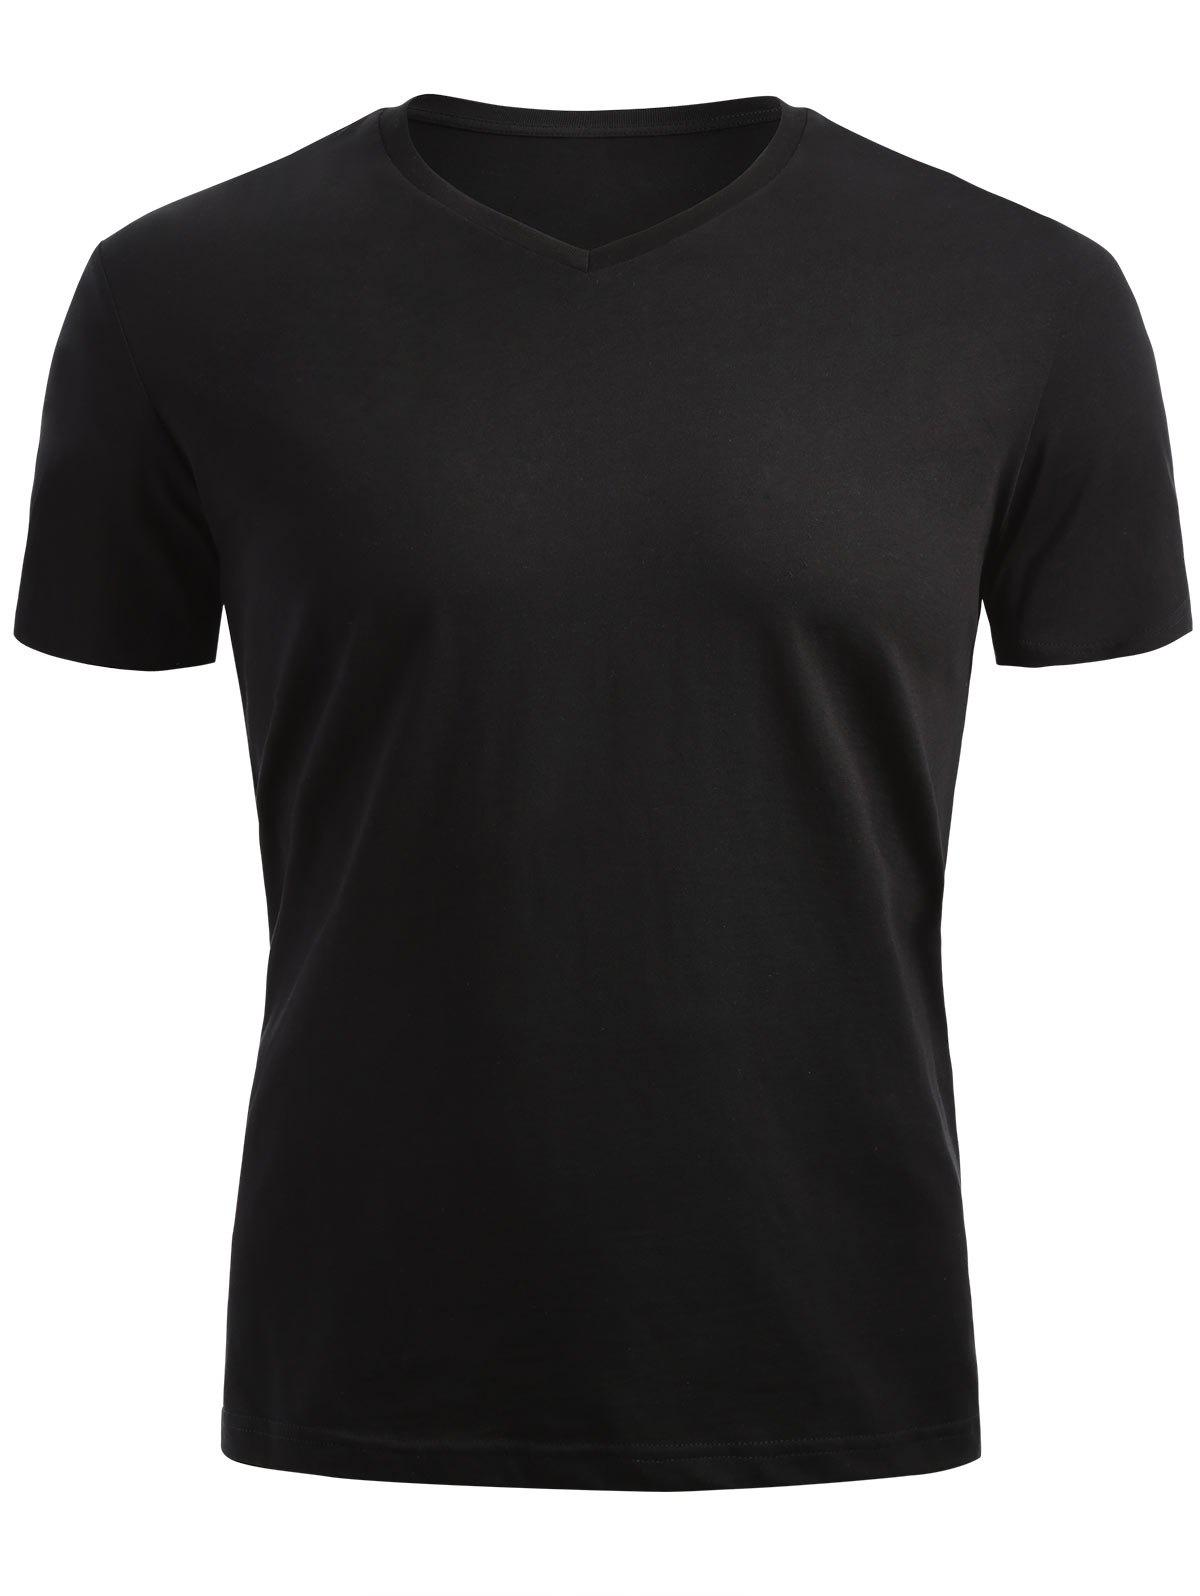 V Neck Short Sleeve T-shirt - BLACK XL